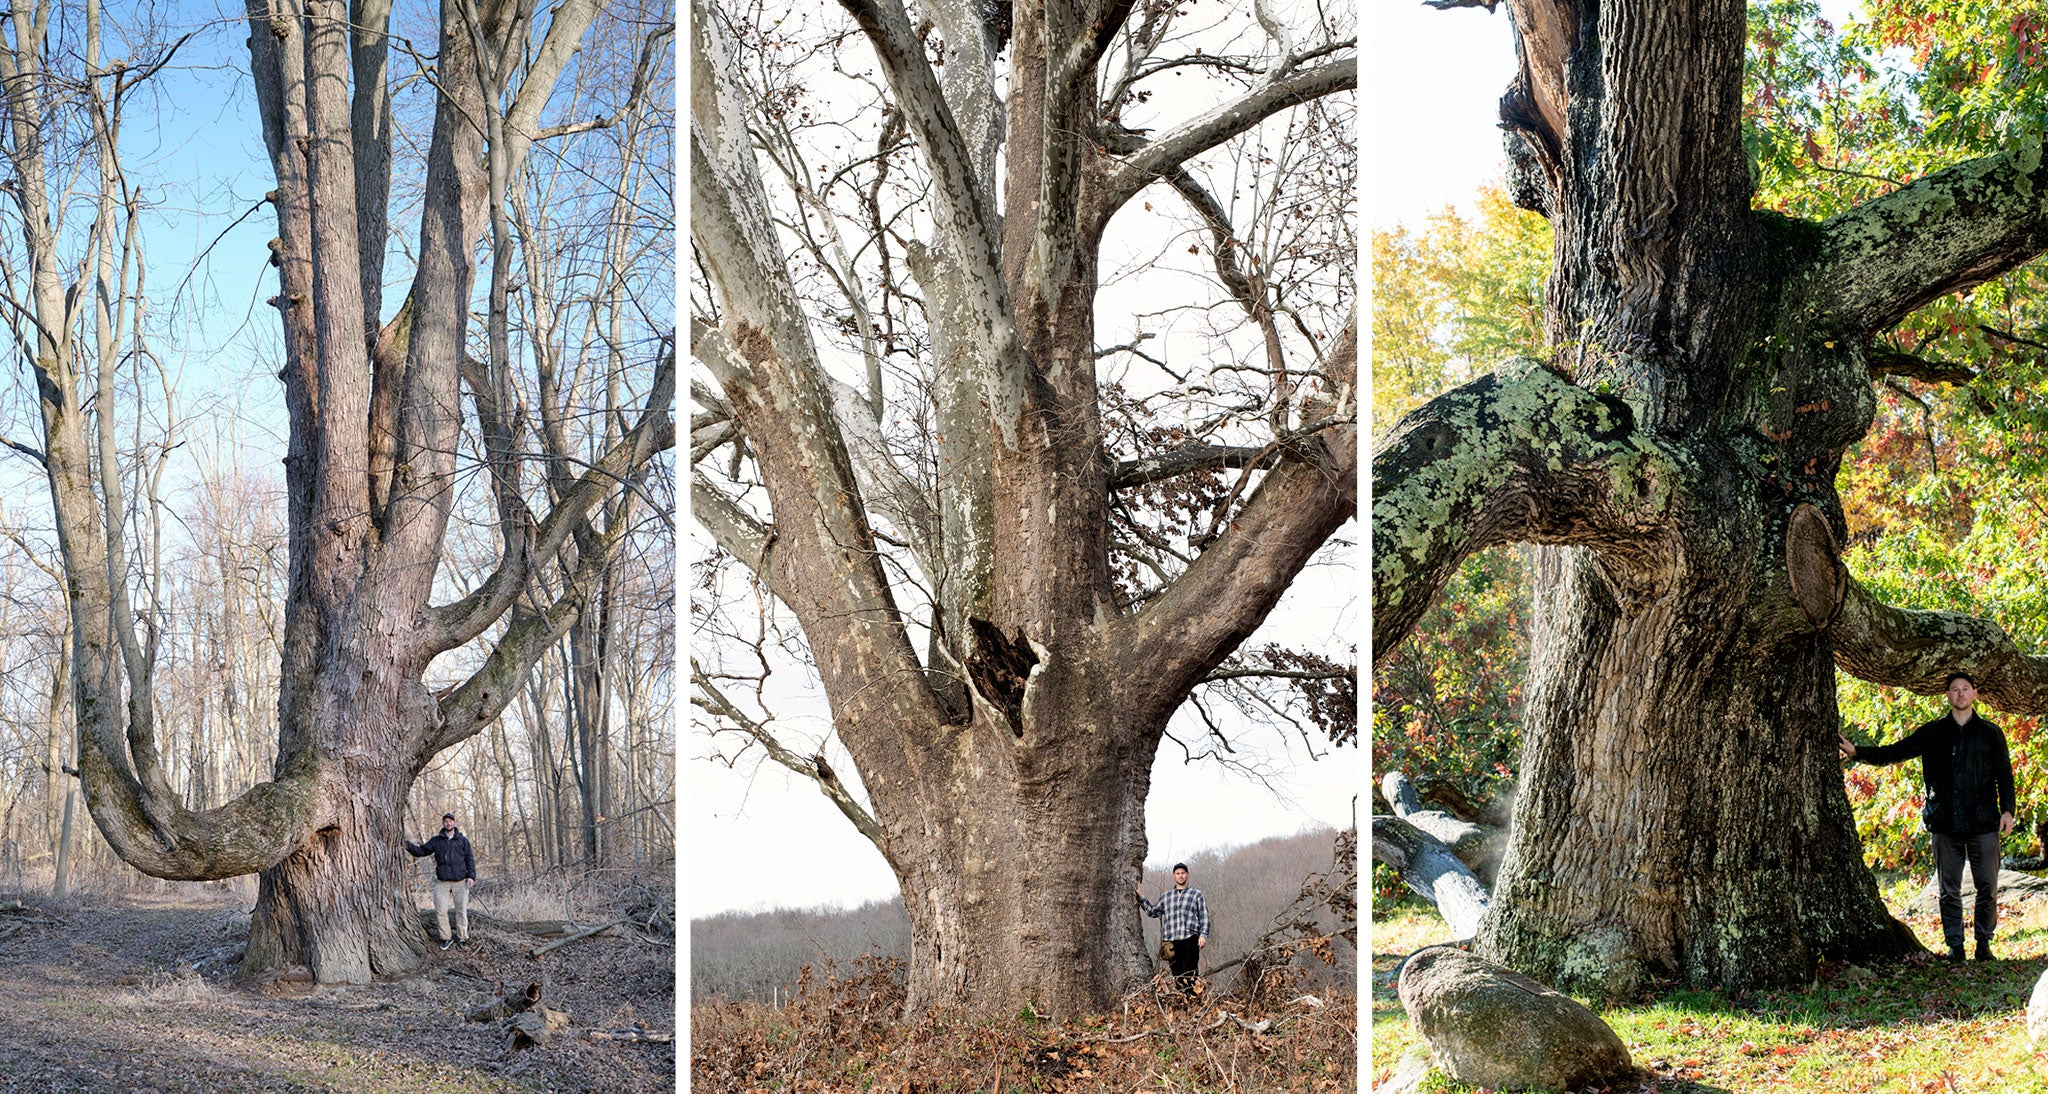 (L) One of the largest Freeman's Maples in the U.S. A Freeman's Maple is a hybrid between a Red and Silver Maple.  (Center) The Pine Plains Sycamore, the largest recorded American Sycamore in the New York and New England area. (R) The Dewey Granby Oak, a sprawling white oak located in Connecticut.